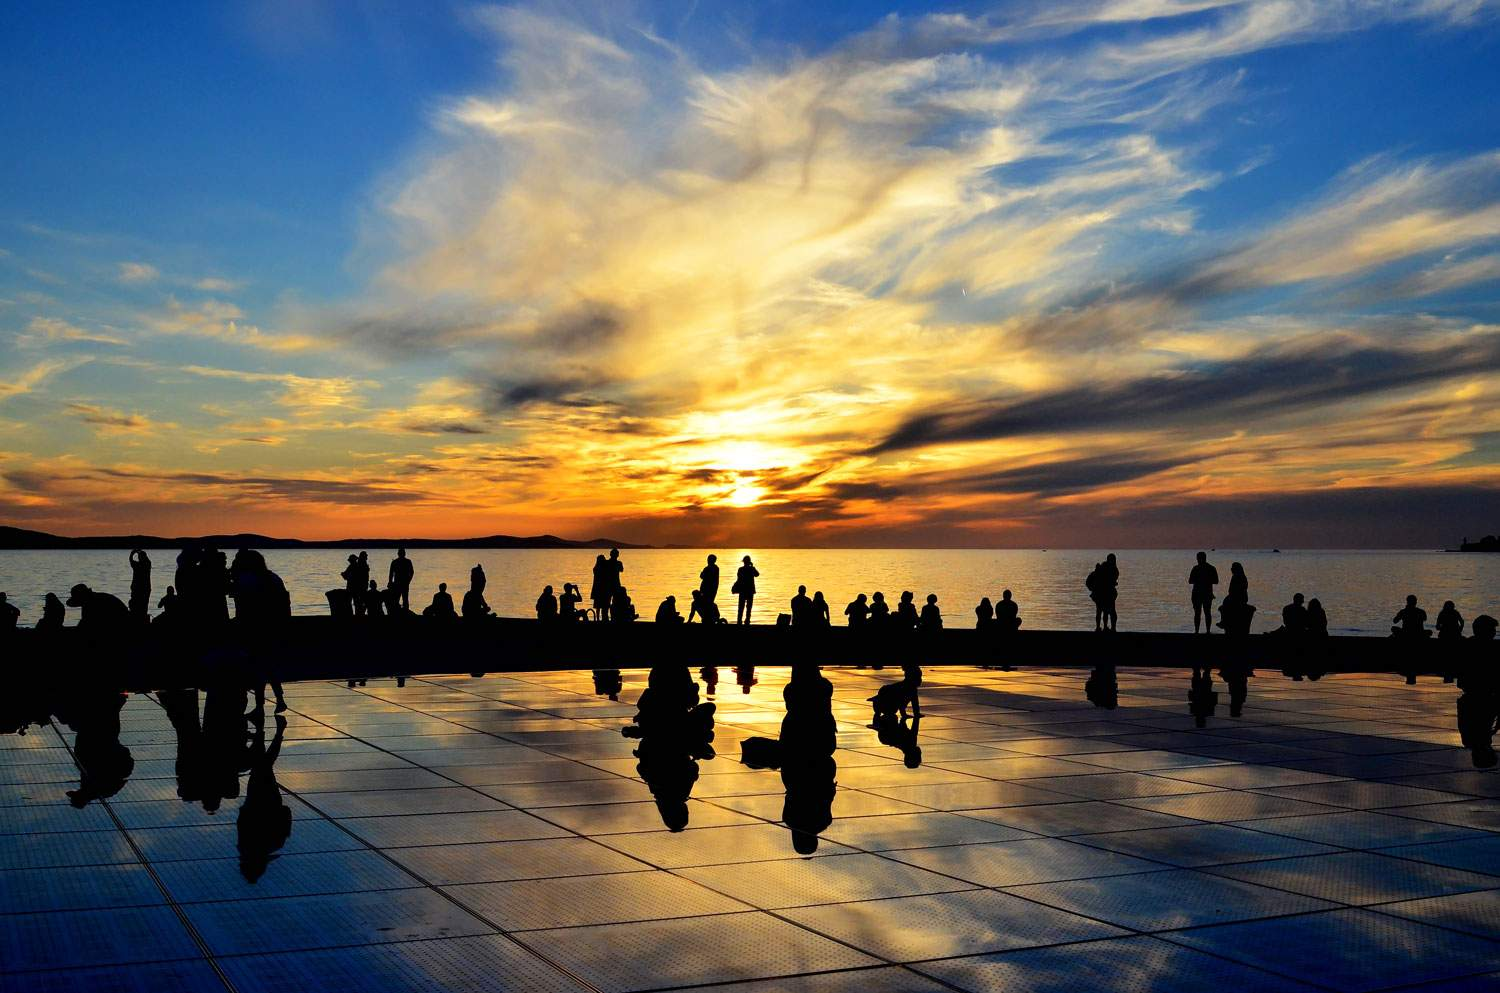 zadar-sun-salutation-best-sunset-spots-croatia